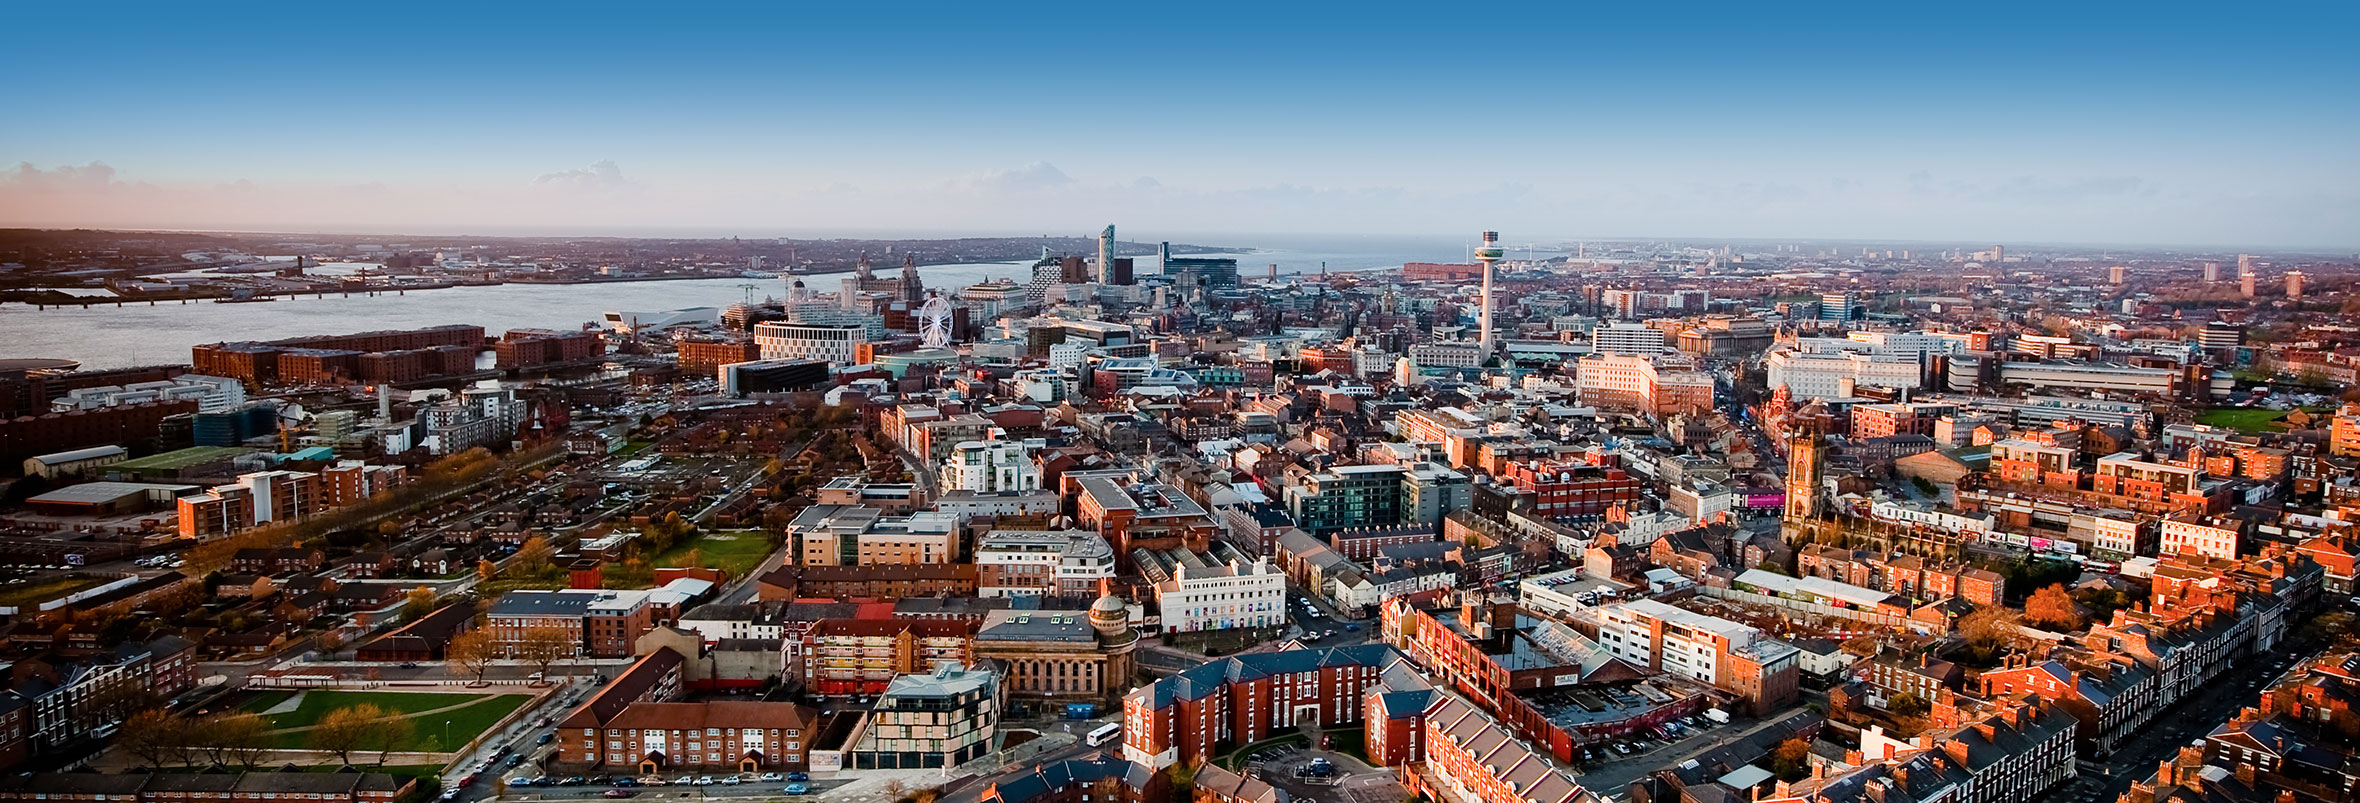 Government refuses Liverpool City-wide licensing scheme extension - https://roomslocal.co.uk/blog/government-refuses-liverpool-city-wide-licensing-scheme-extension #releases #refuses #liverpool #city #wide